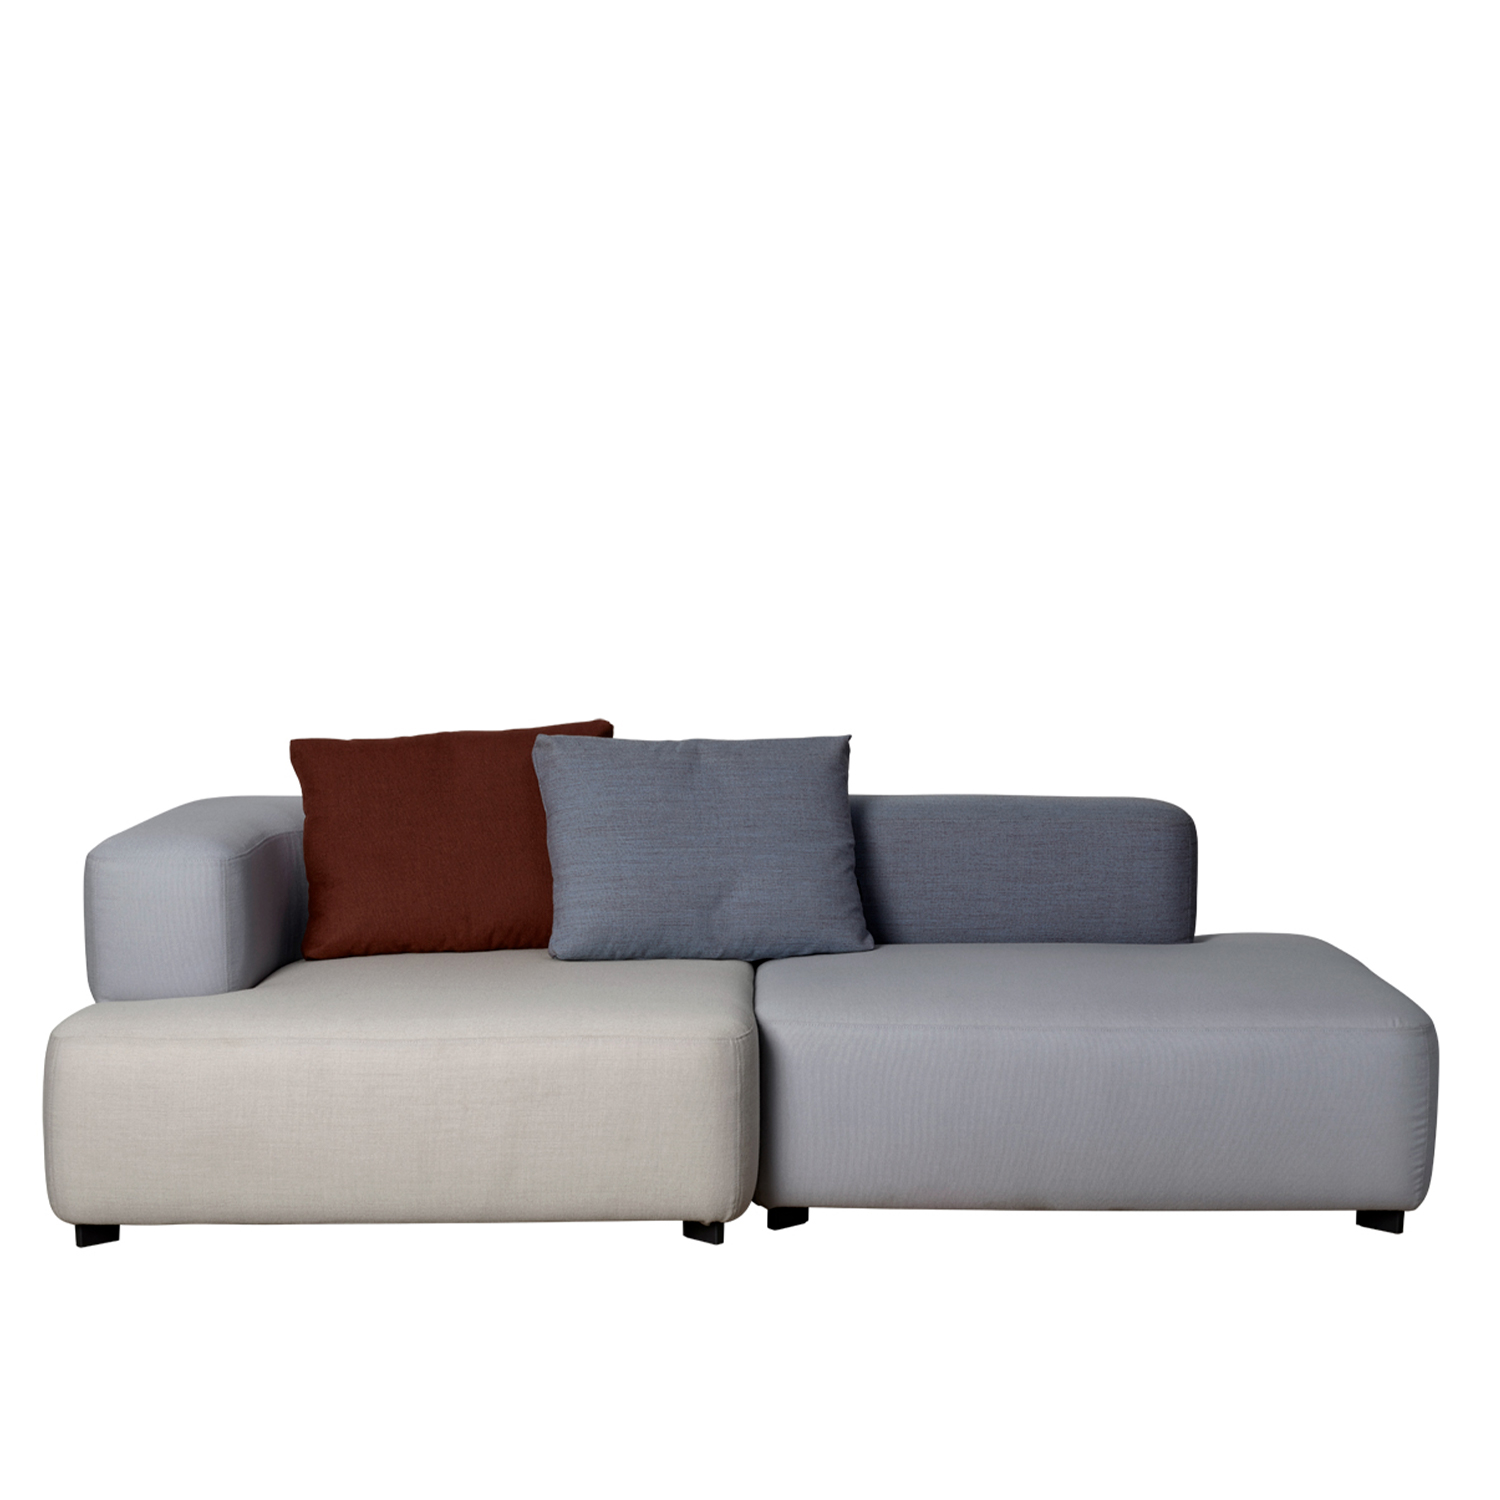 Alphabet Modular Sofa Series - Alphabet Sofa Series is a flexible sofa concept designed by Piero Lissoni. The design, inspired by toy Lego bricks, consists of modular elements that can be combined in an endless variety of combinations. The fully upholstered seat, back and armrest units come in a wide range of fabrics, which are easily removed for cleaning or replacement. 